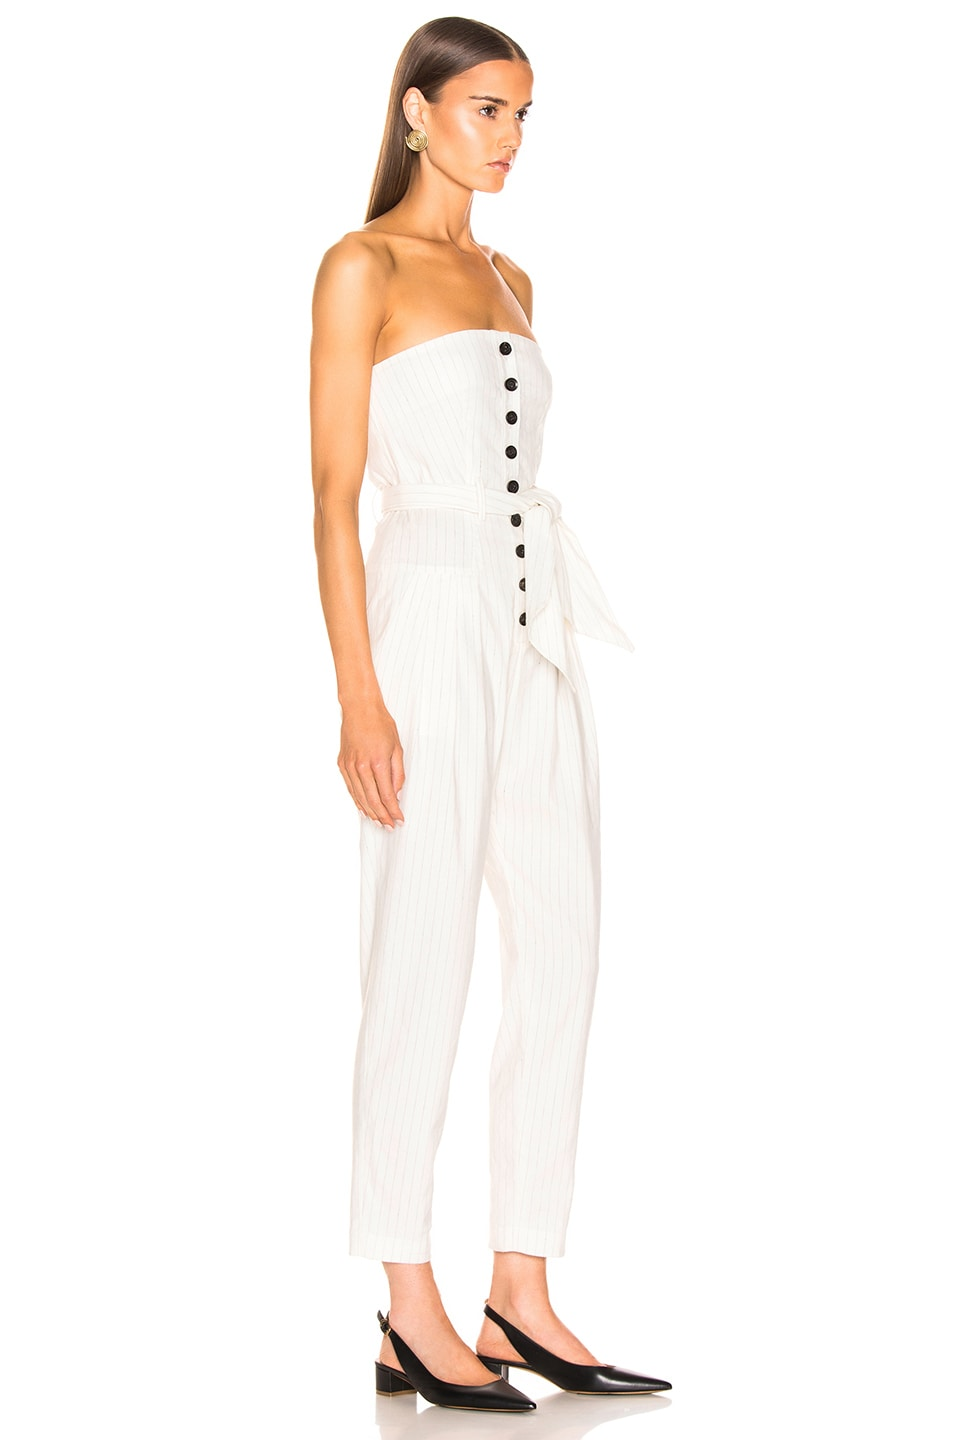 Image 2 of Marissa Webb Nikos Linen Jumpsuit in White Pinstripe